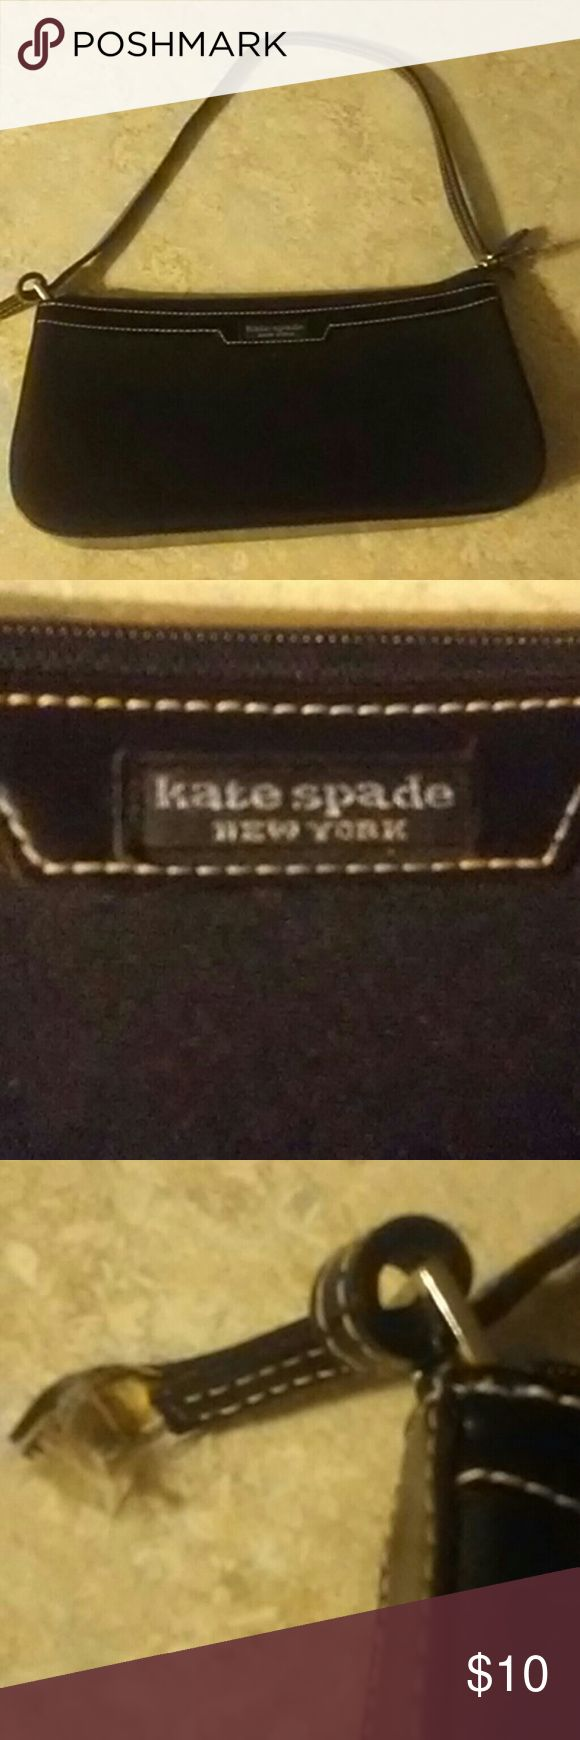 Small kate spade purse See pictures on handles. kate spade Bags